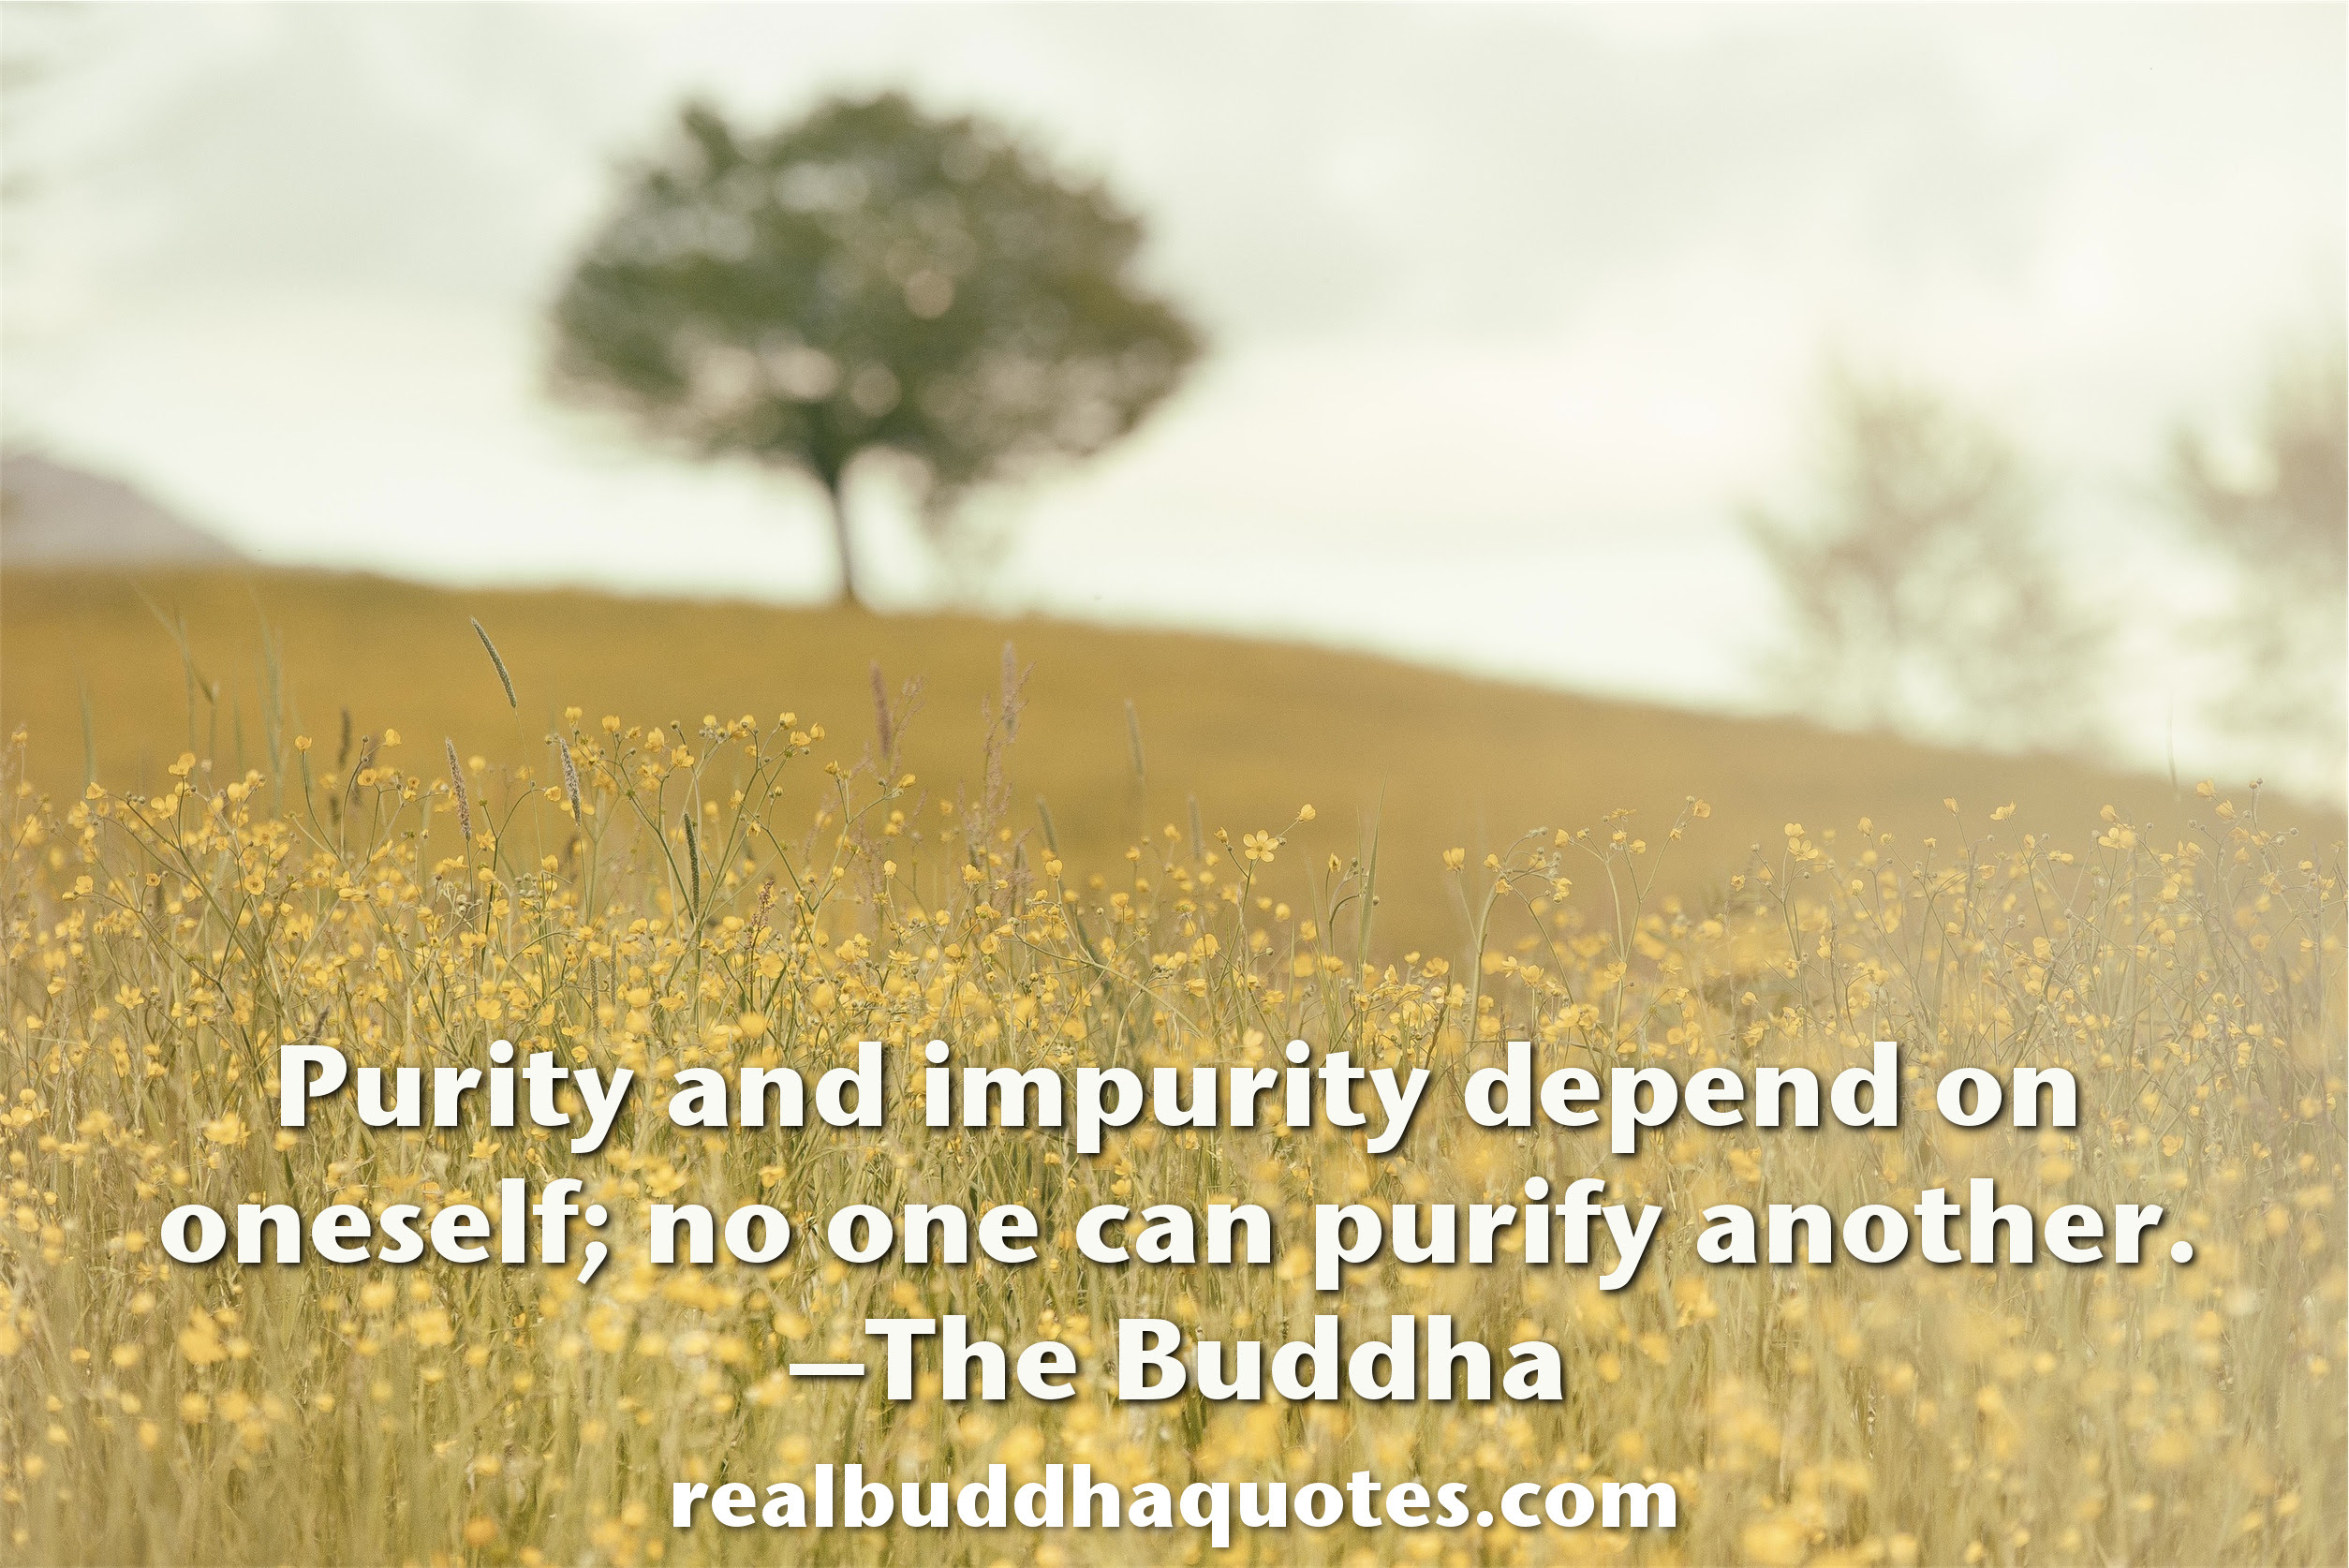 Purity And Impurity Depend On Oneself No One Can Purify Another